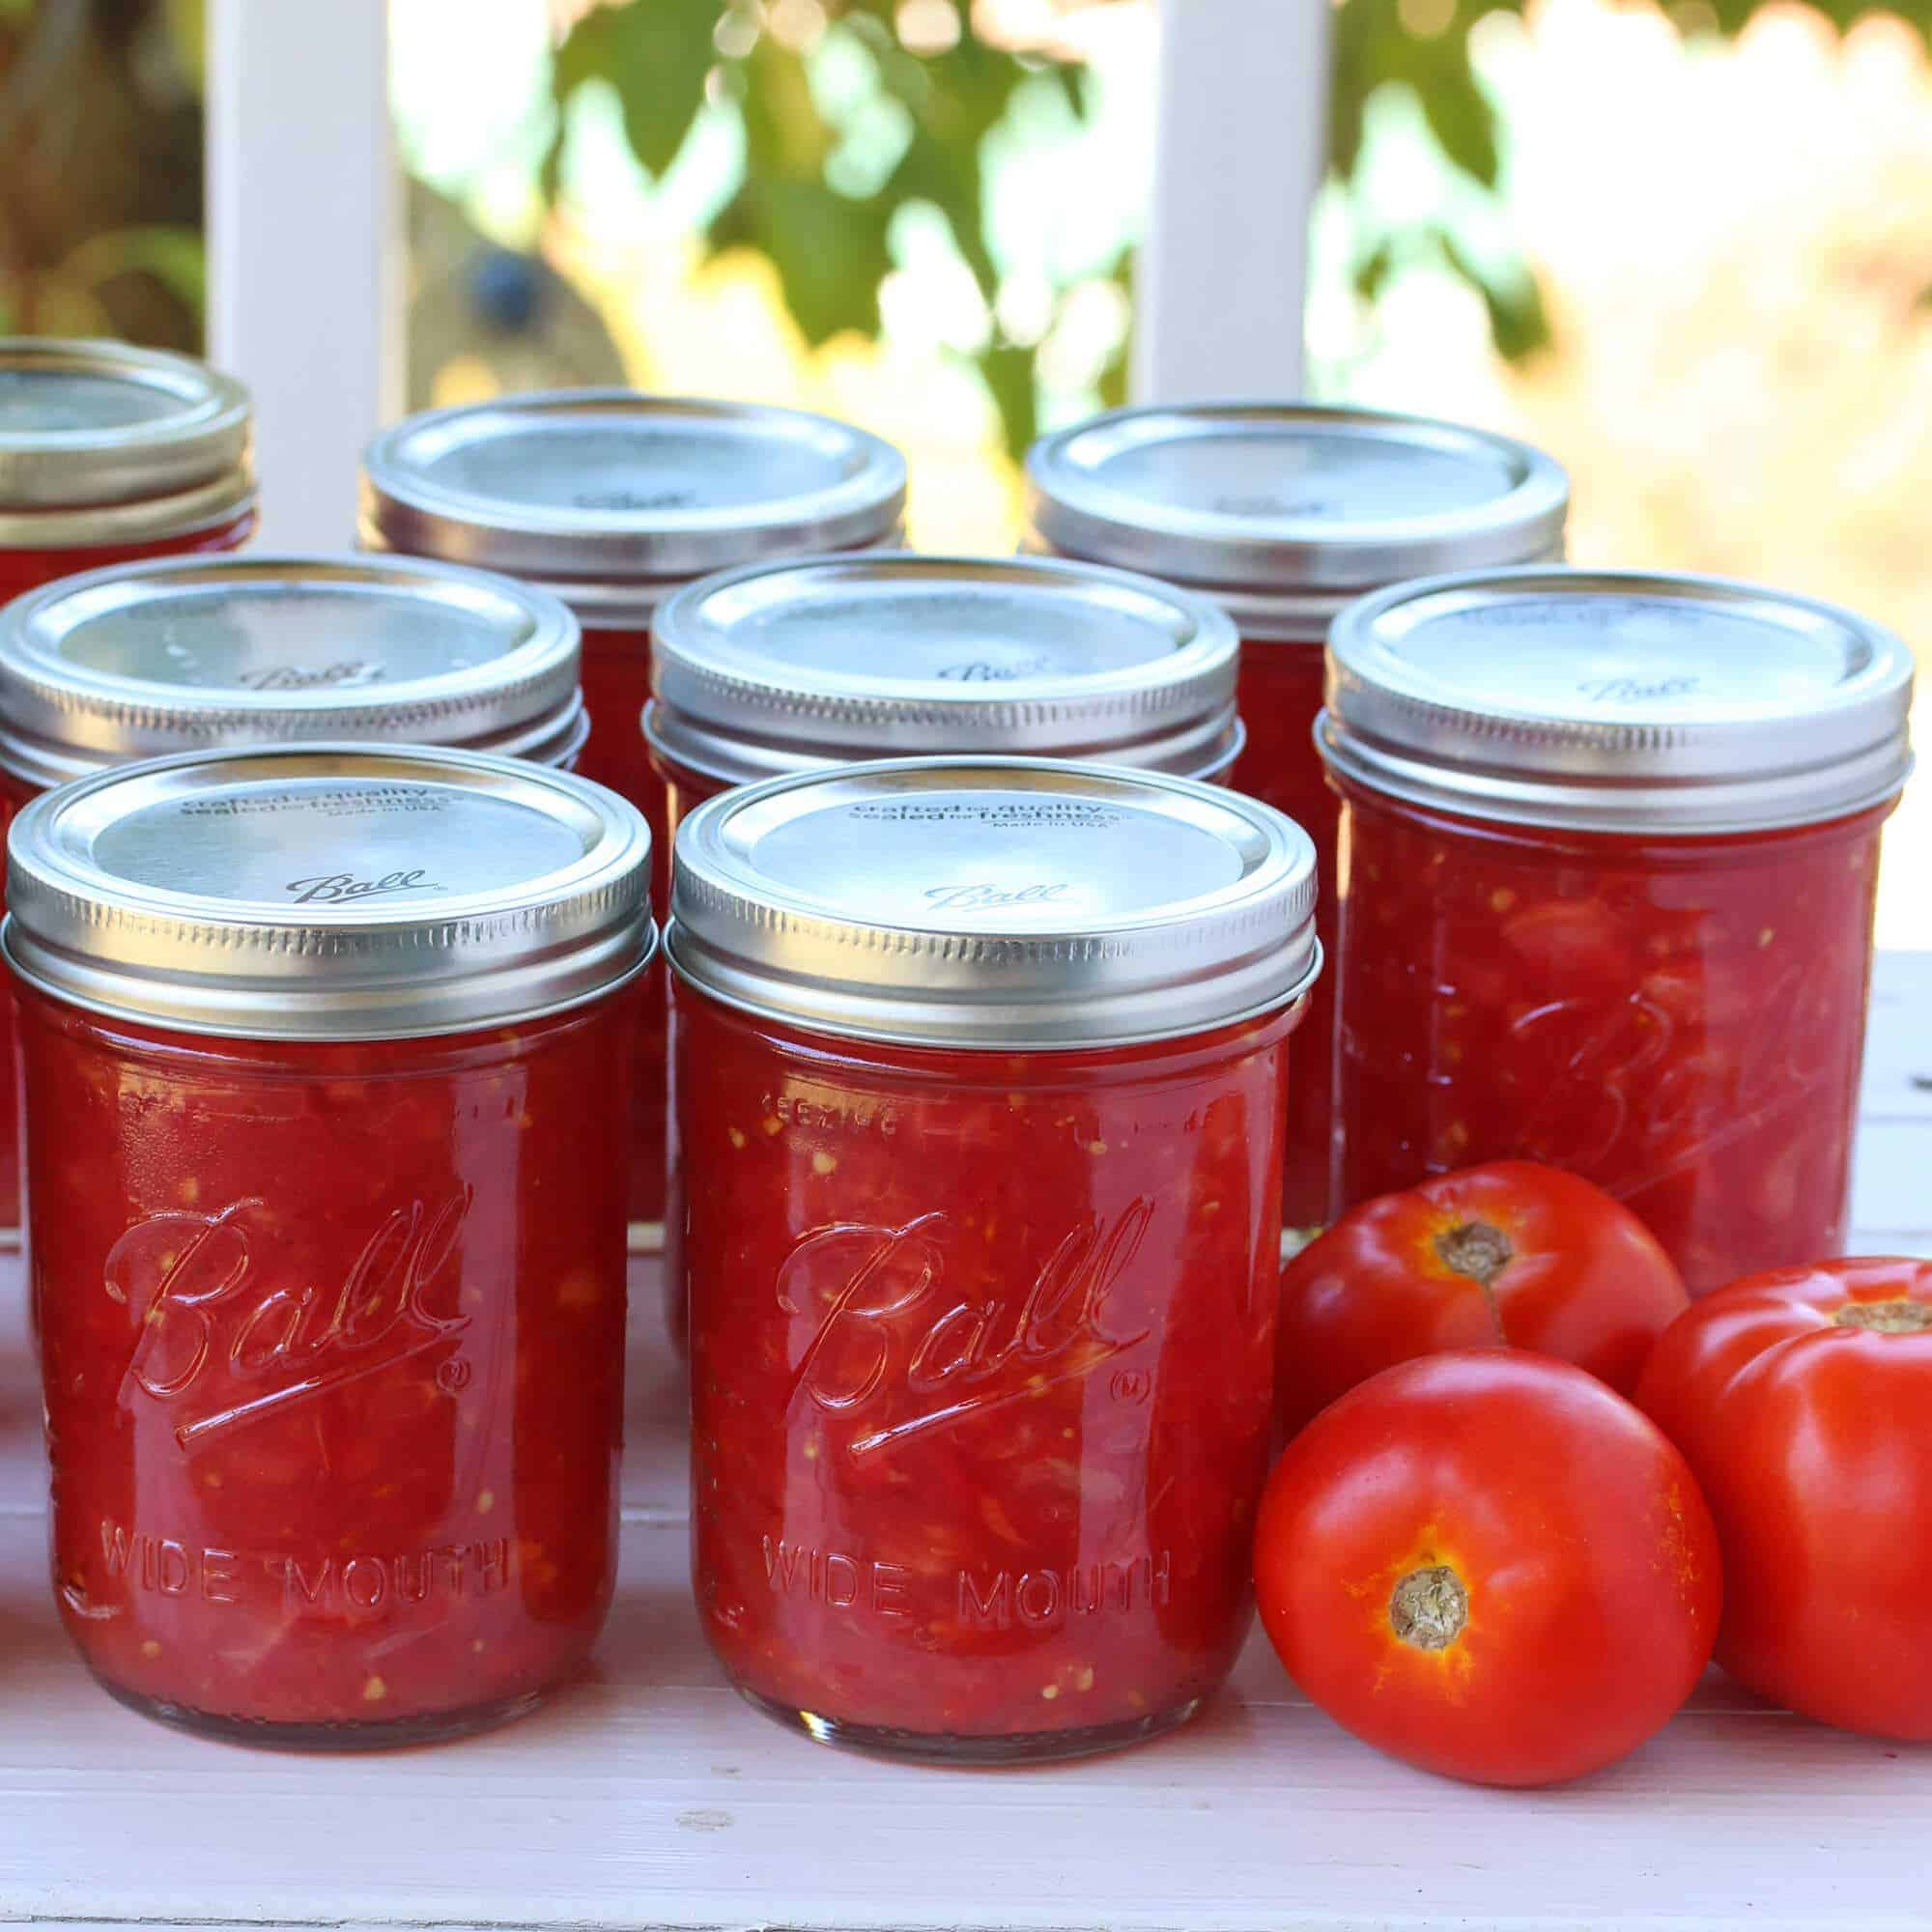 Make your own tomato juice from canned tomatoes